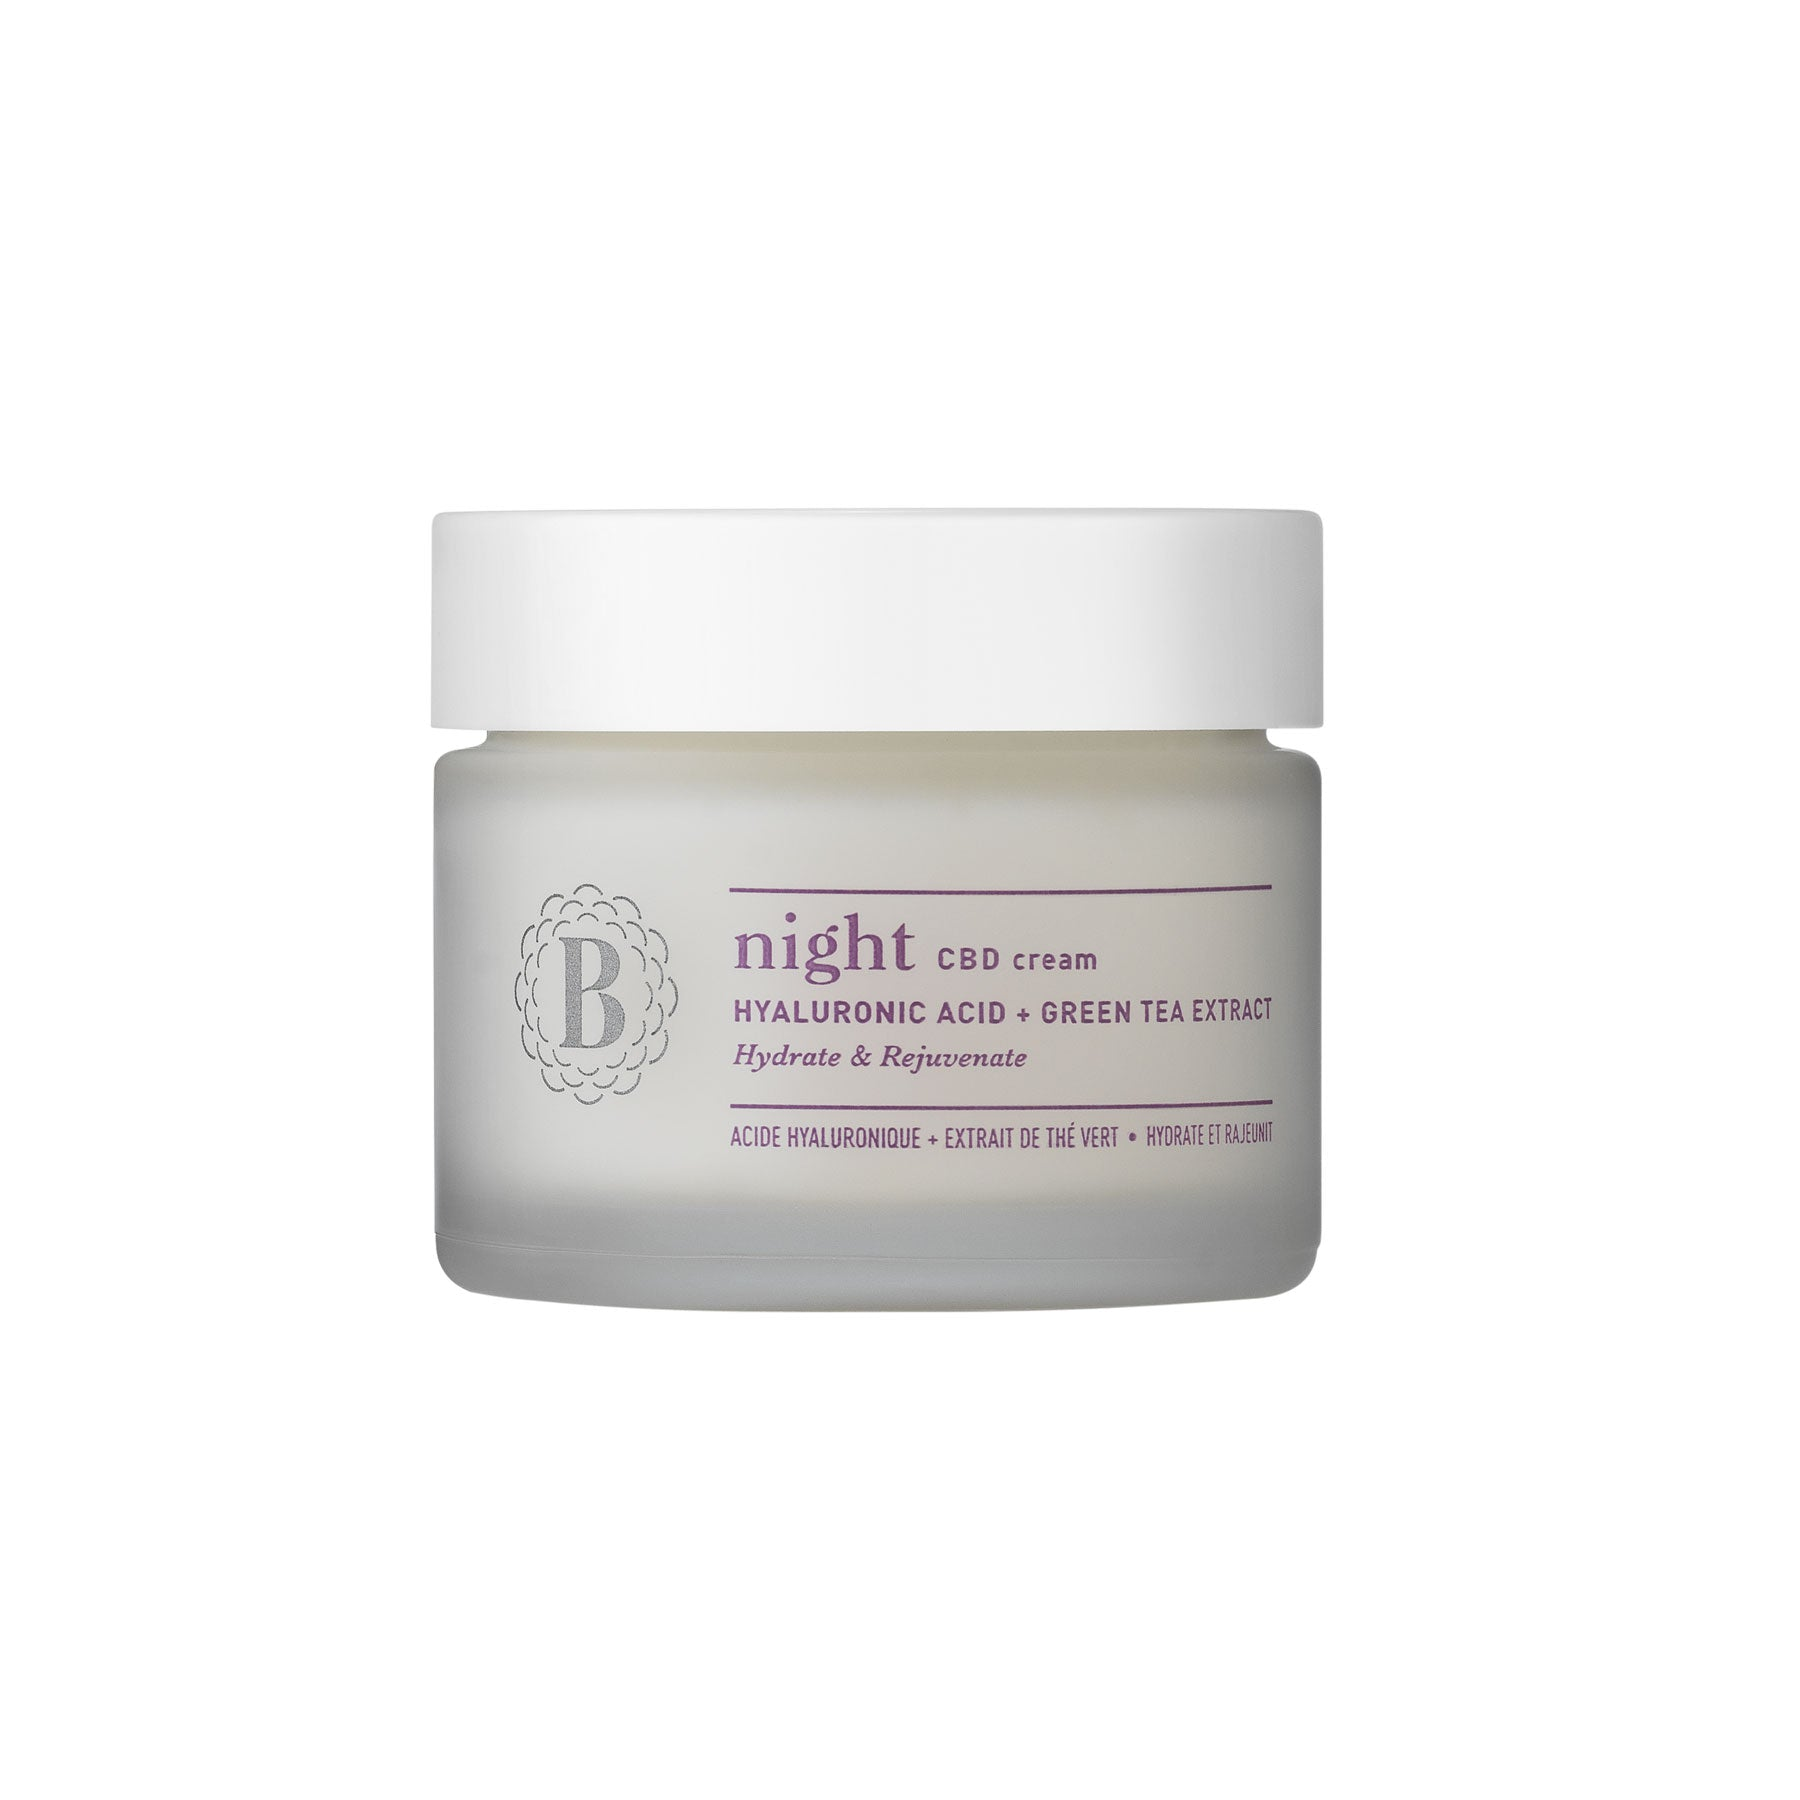 NIGHT - CBD Cream with Hyaluronic Acid & Green Tea Extract-CBD Cosmetics-Blossom-Swiss CBD Shop-uWeed